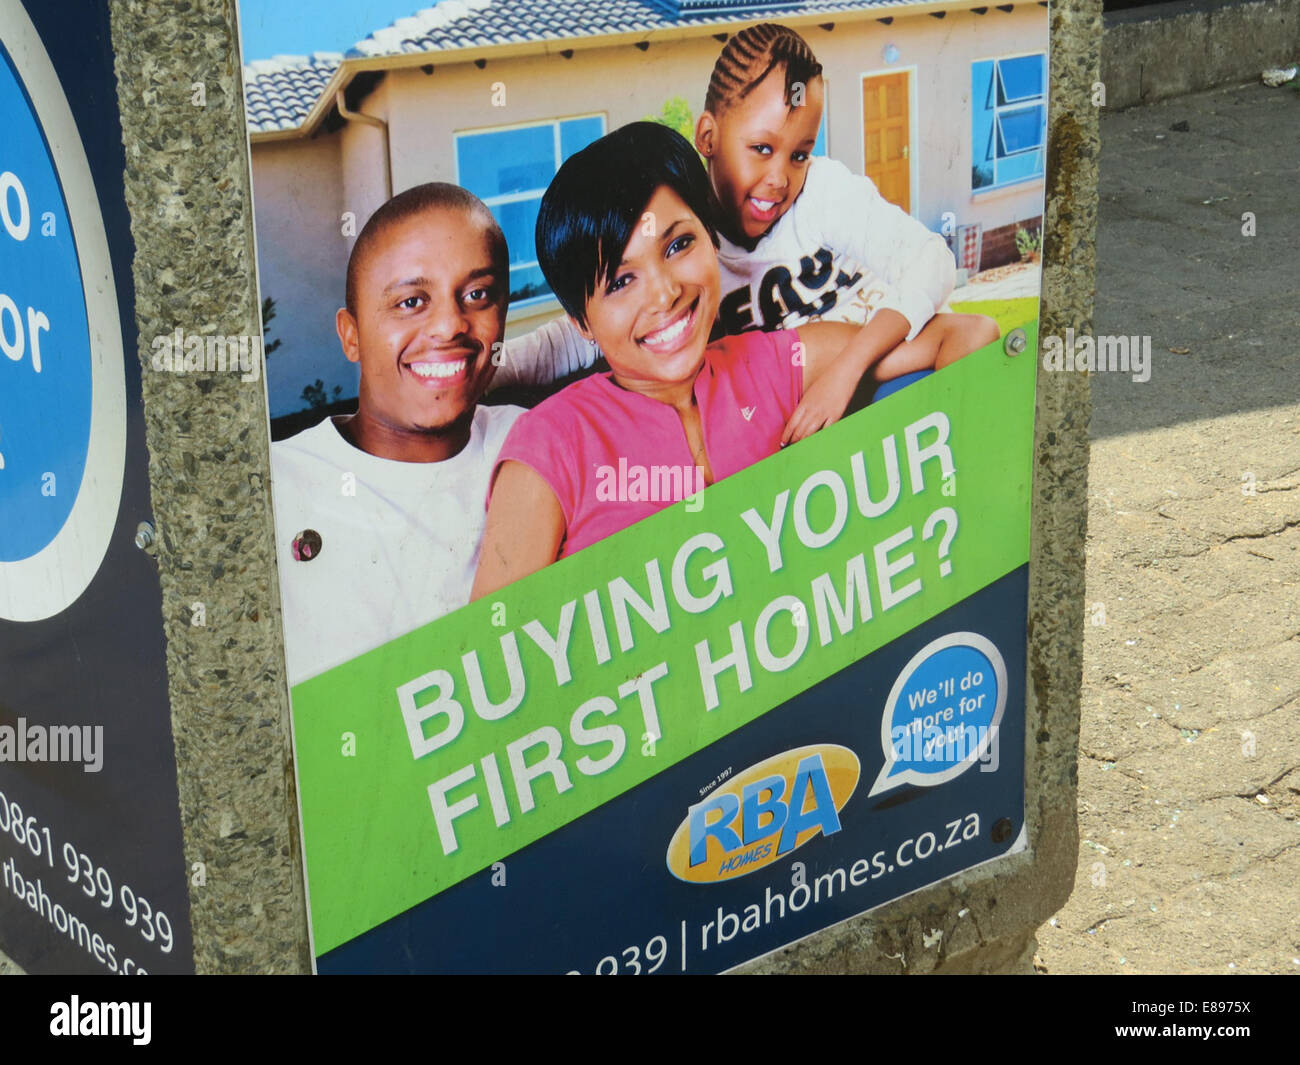 RBA HOMES poster in Polokwane, South Africa. Photo Tony Gale - Stock Image